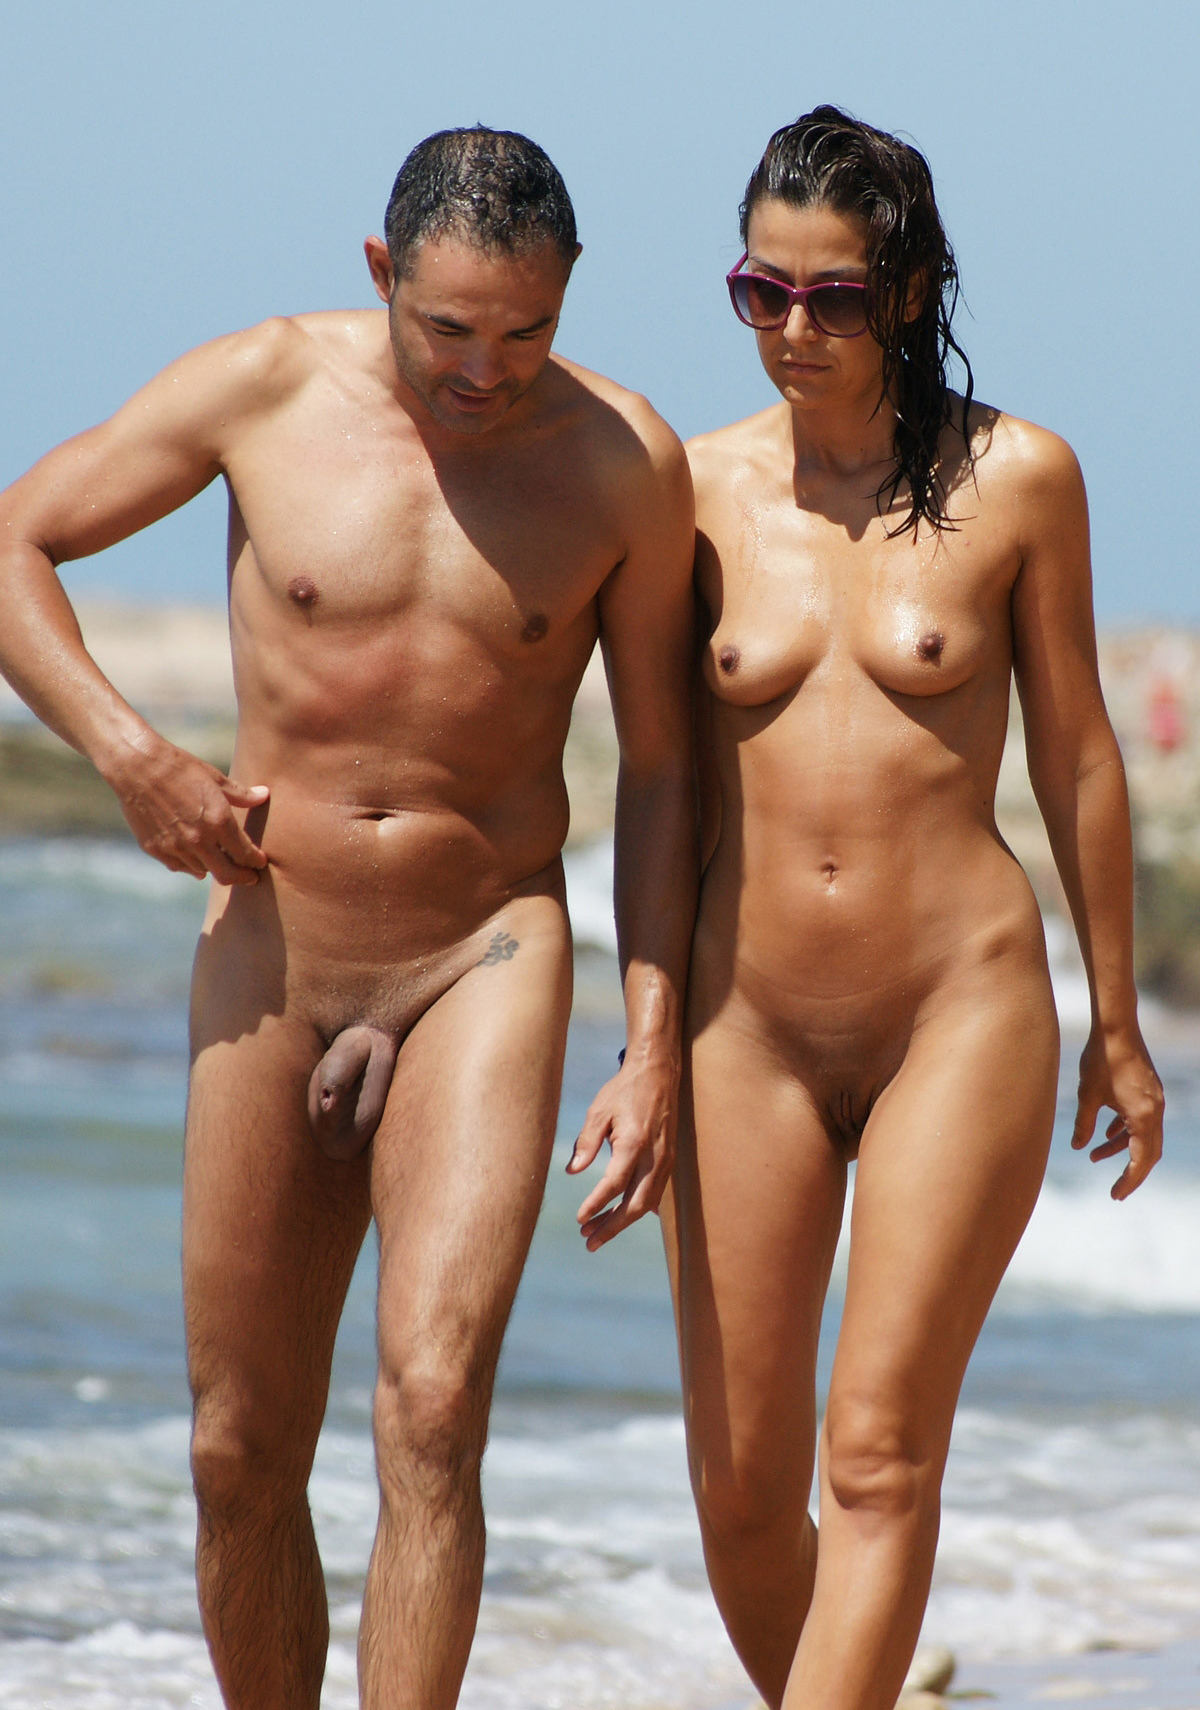 men naked at beach couple